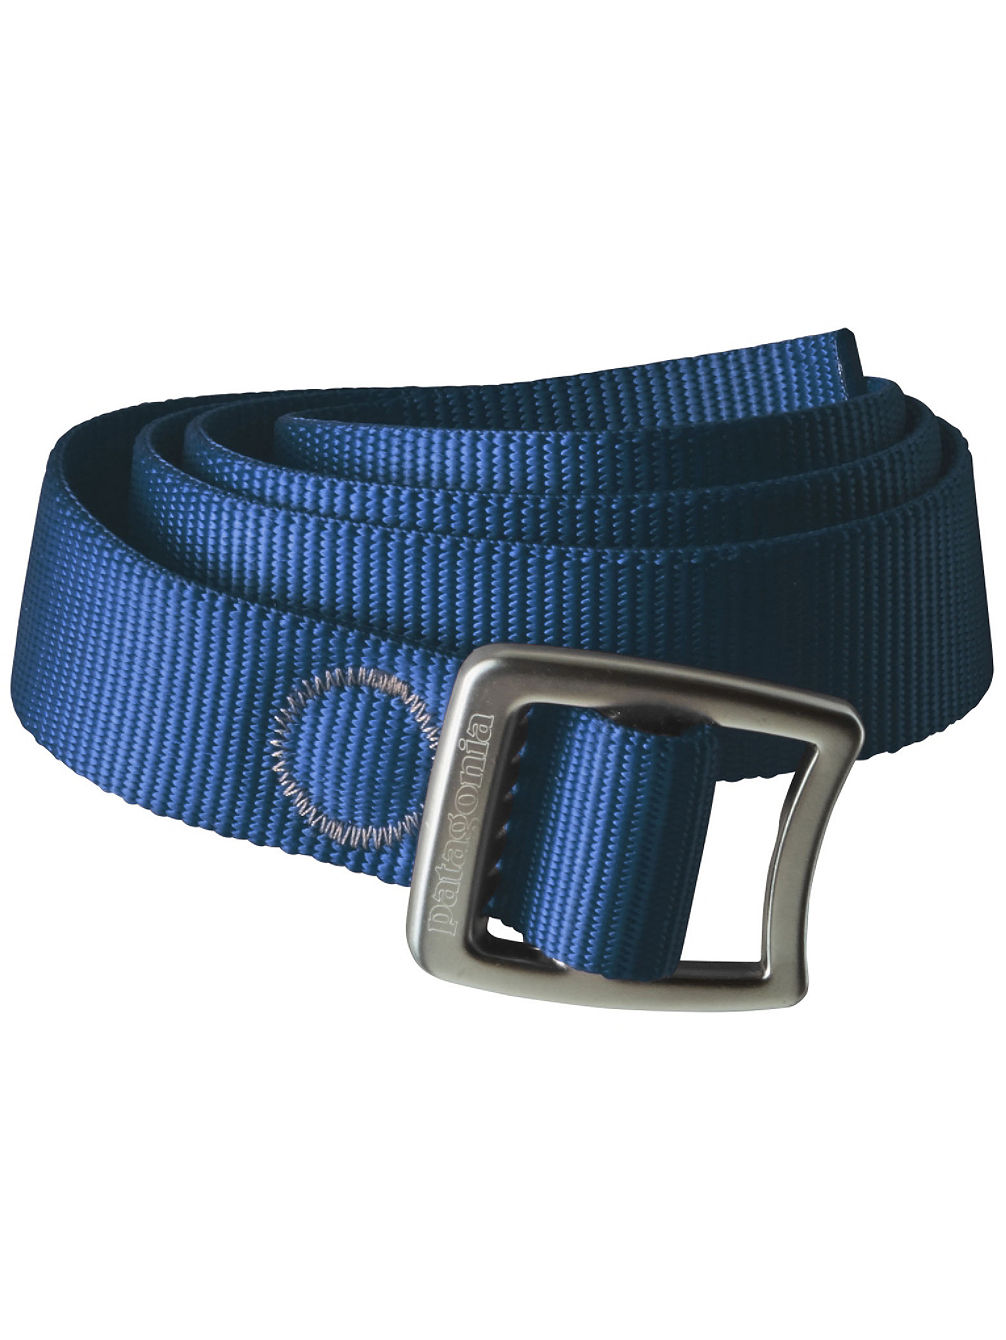 patagonia-tech-web-belt